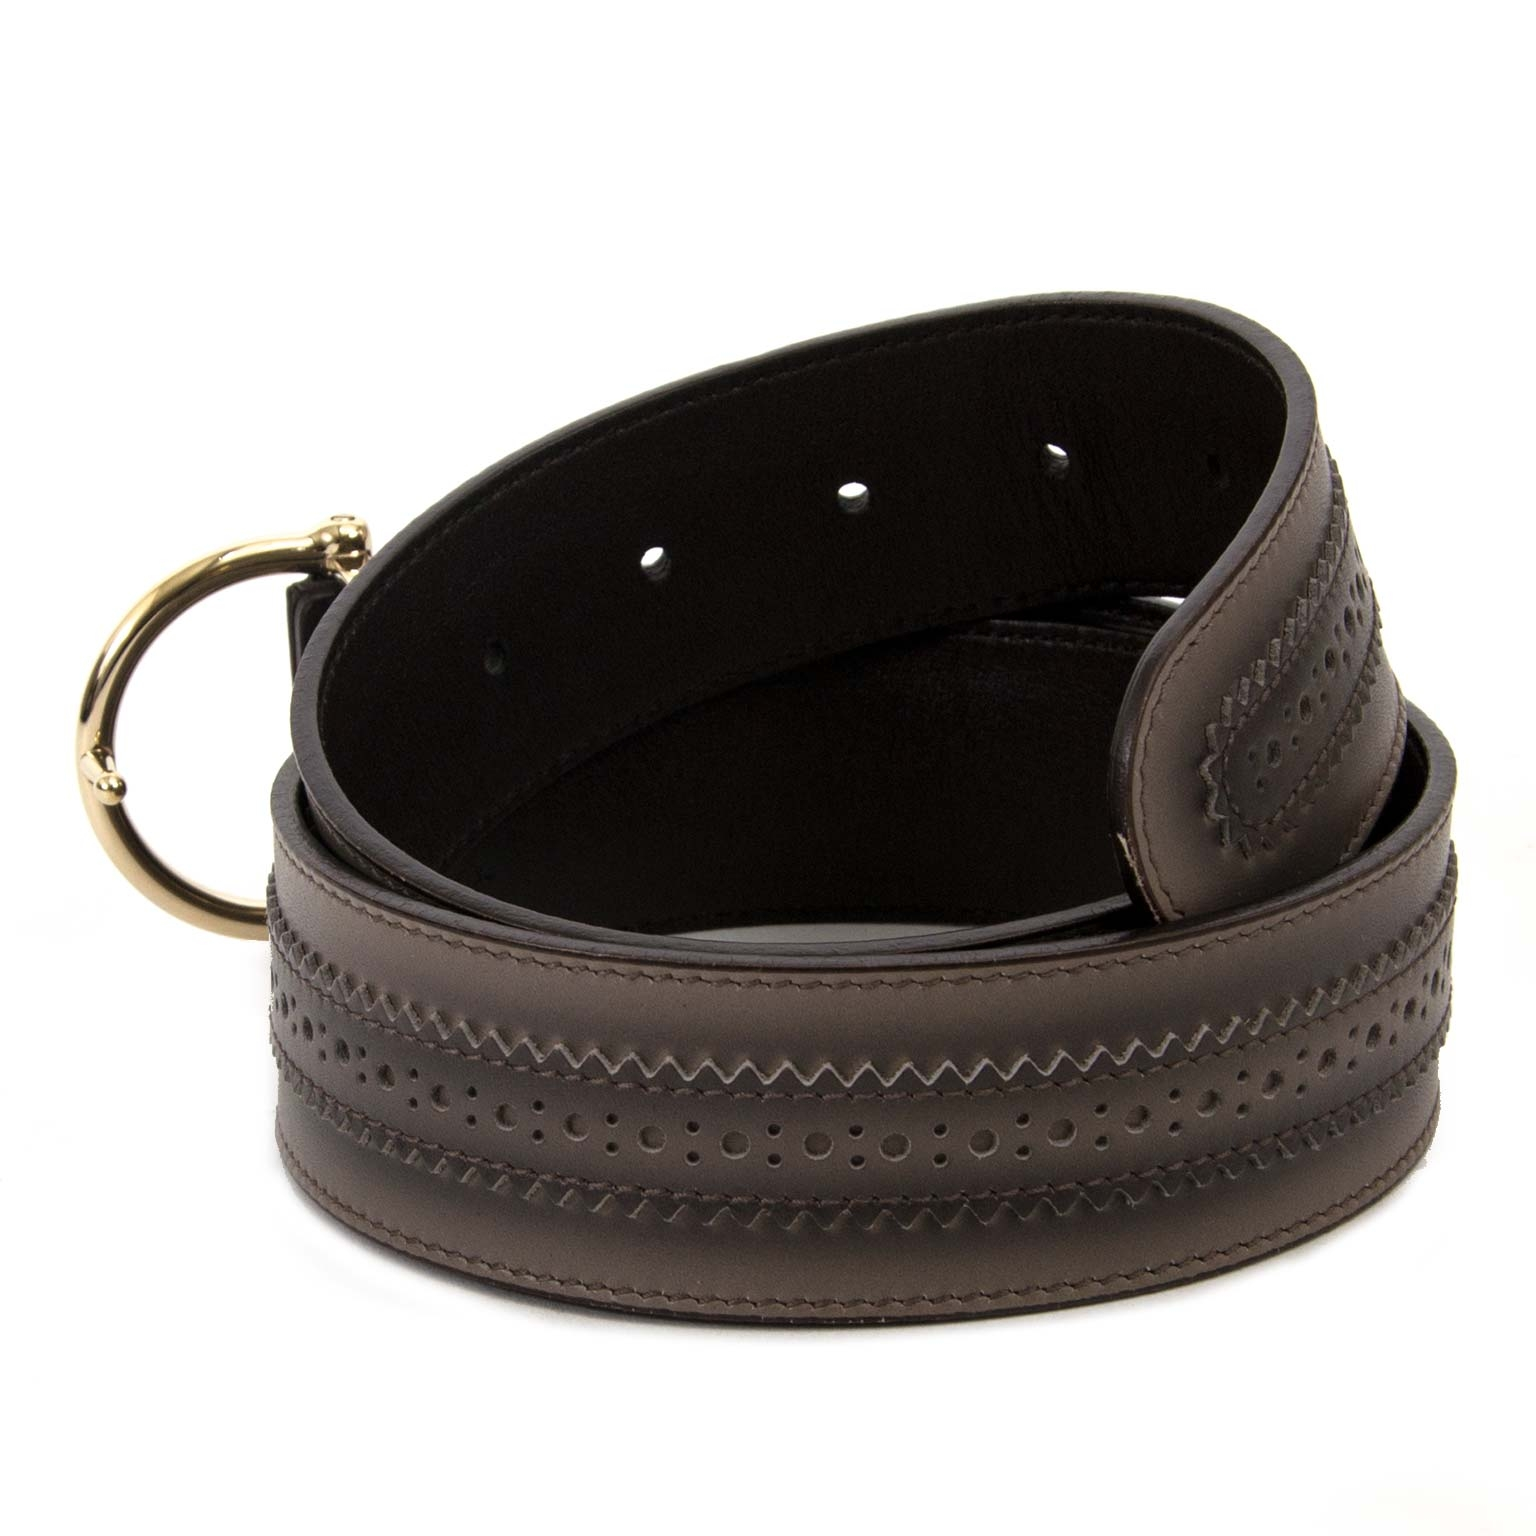 gucci grey leather horsebit belt now for sale at labellov vintage fashion webshop belgium